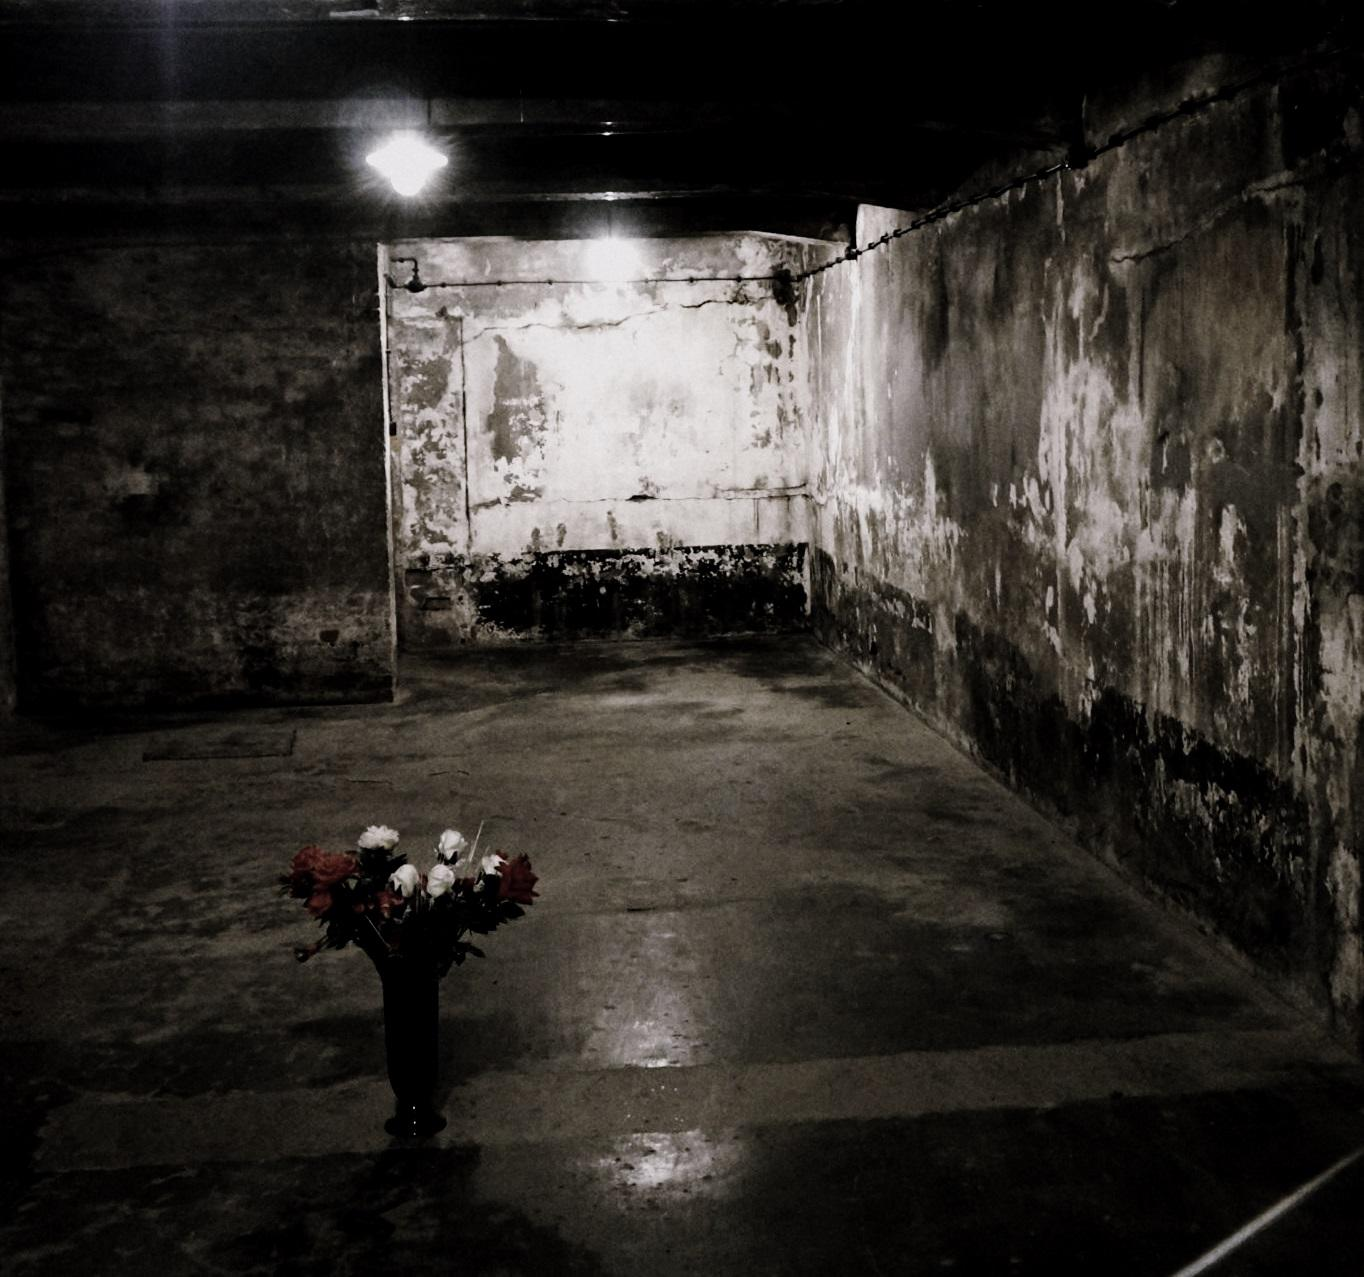 Flowers left in a gas chamber at Auschwitz.